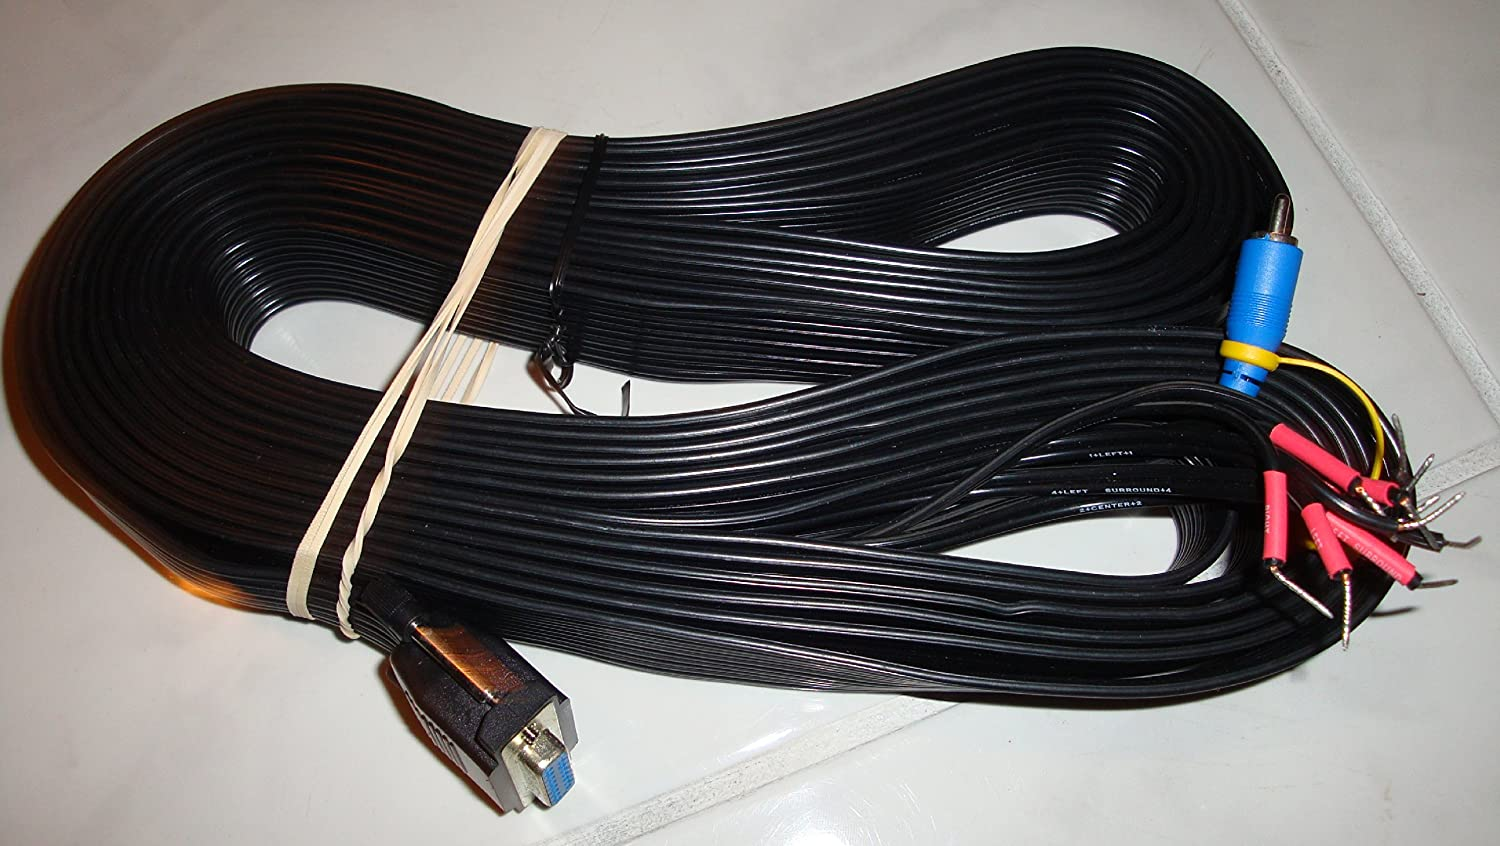 91VP4Uej%2BCL._SL1500_ amazon com bose audio cable 15 pin from subwoofer to receiver  at crackthecode.co